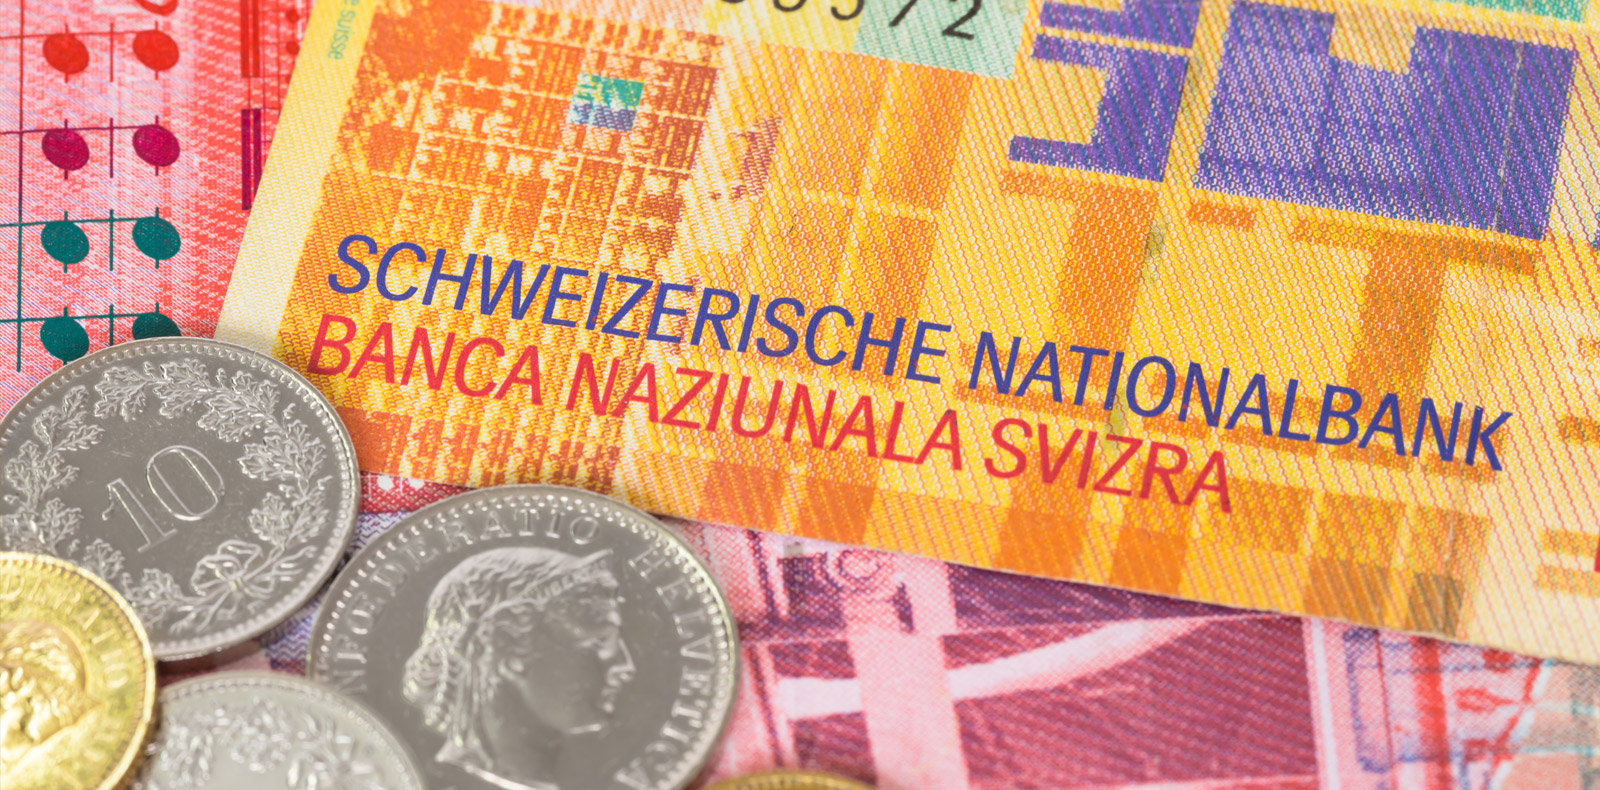 Switzerland prints and spends more currency